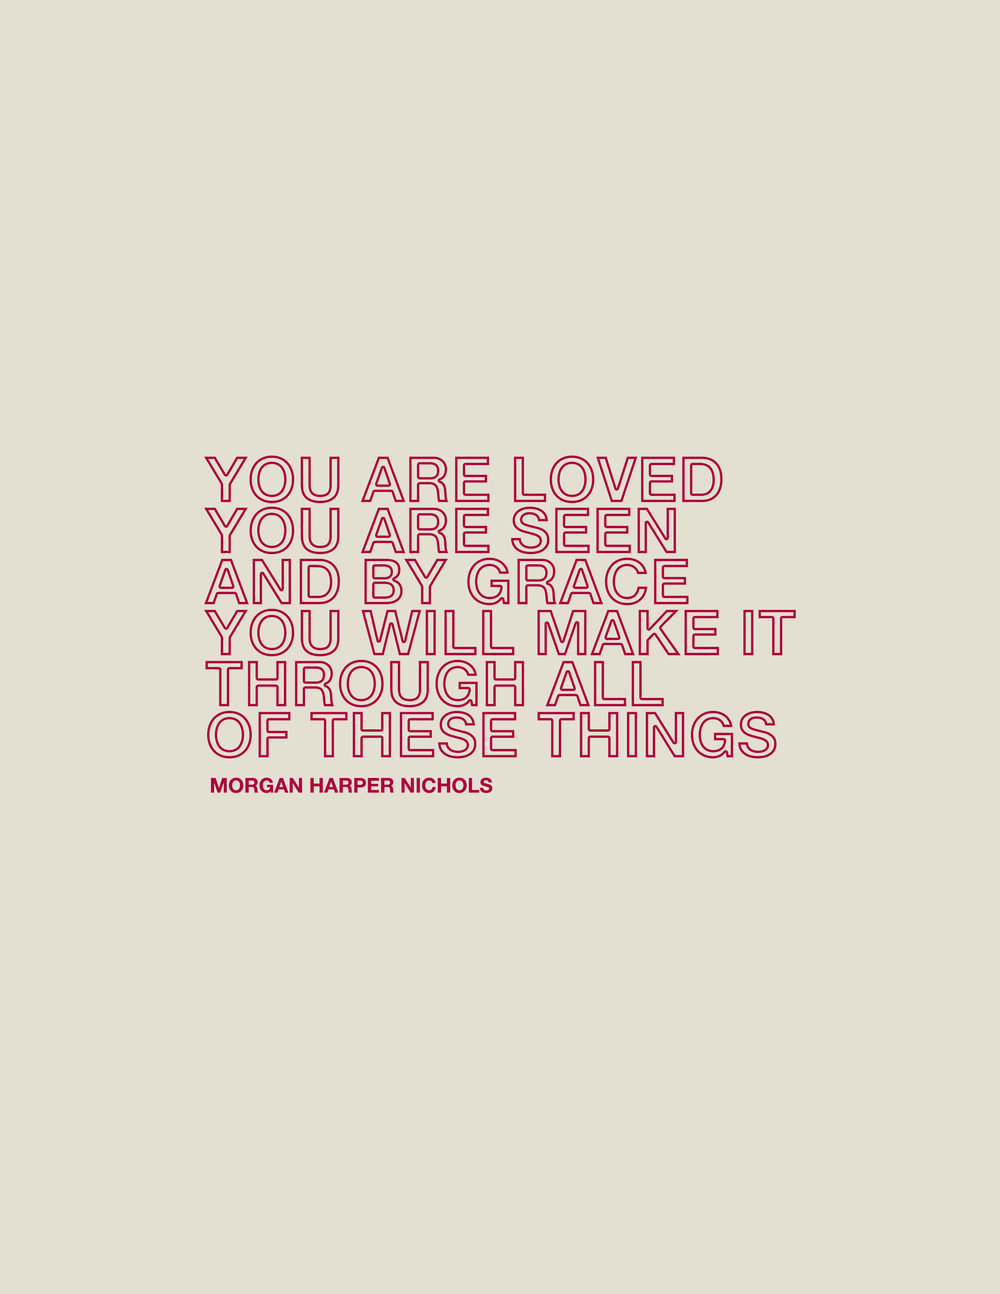 MHN - You are loved you are seen.jpg